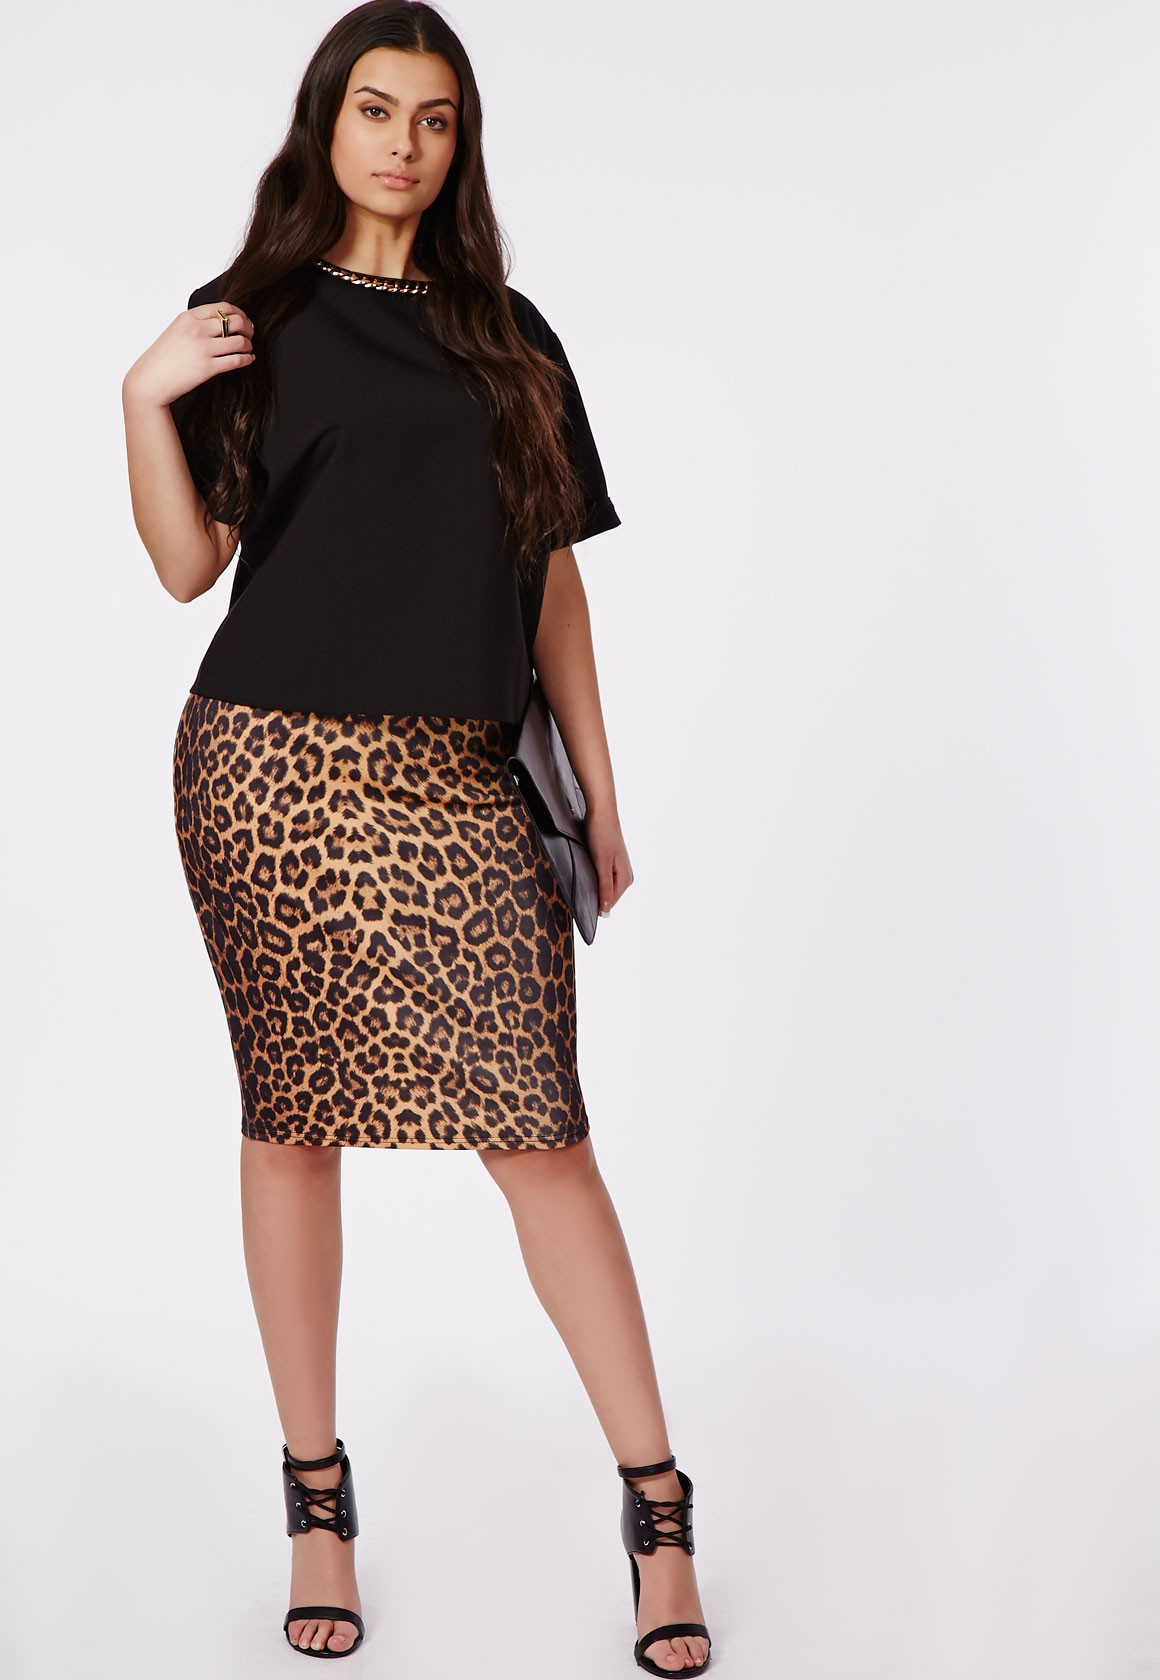 animal Print skirt for girls with large hips